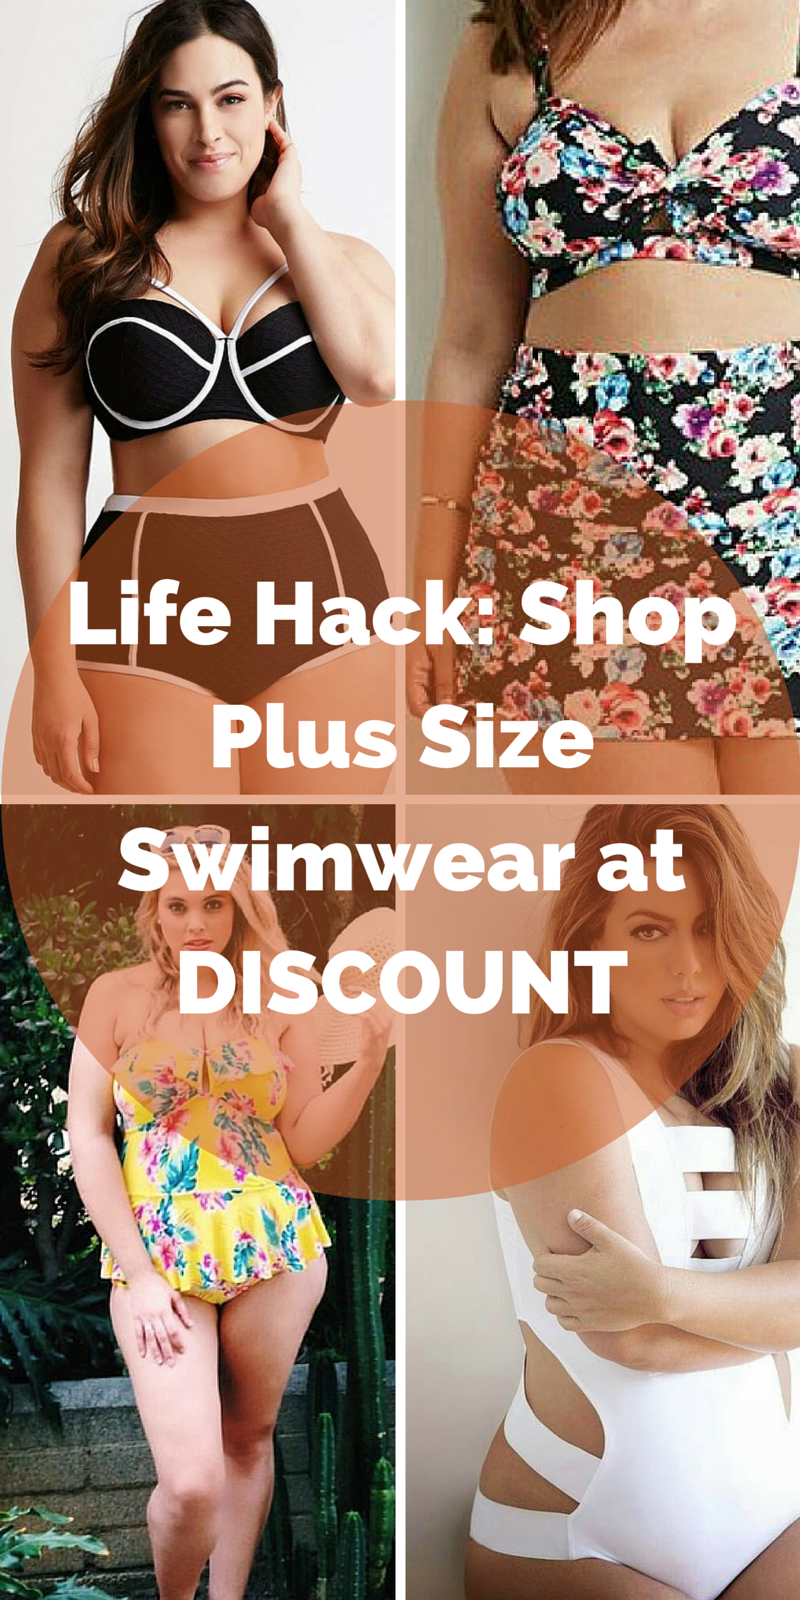 7615e67943 The clothes you want now! Shop one of the biggest sales of the year to find  swimwear for all shapes and sizes at up to 80% off retail.